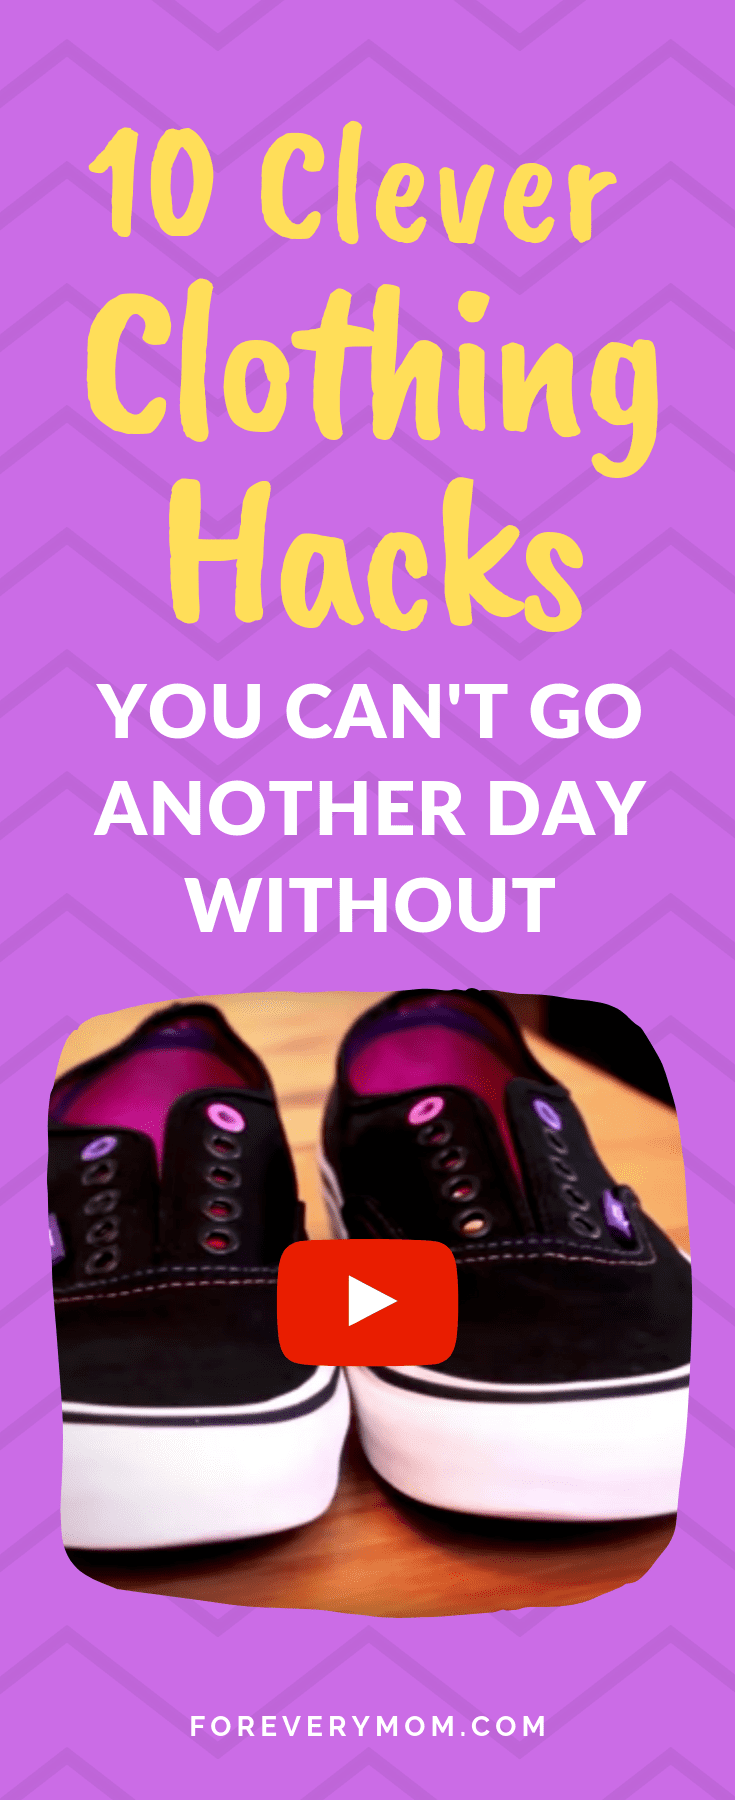 Hacks These clothing hacks blew my mind  and saved some of my favorite items too Check out just how awesome these clothing hacks can be